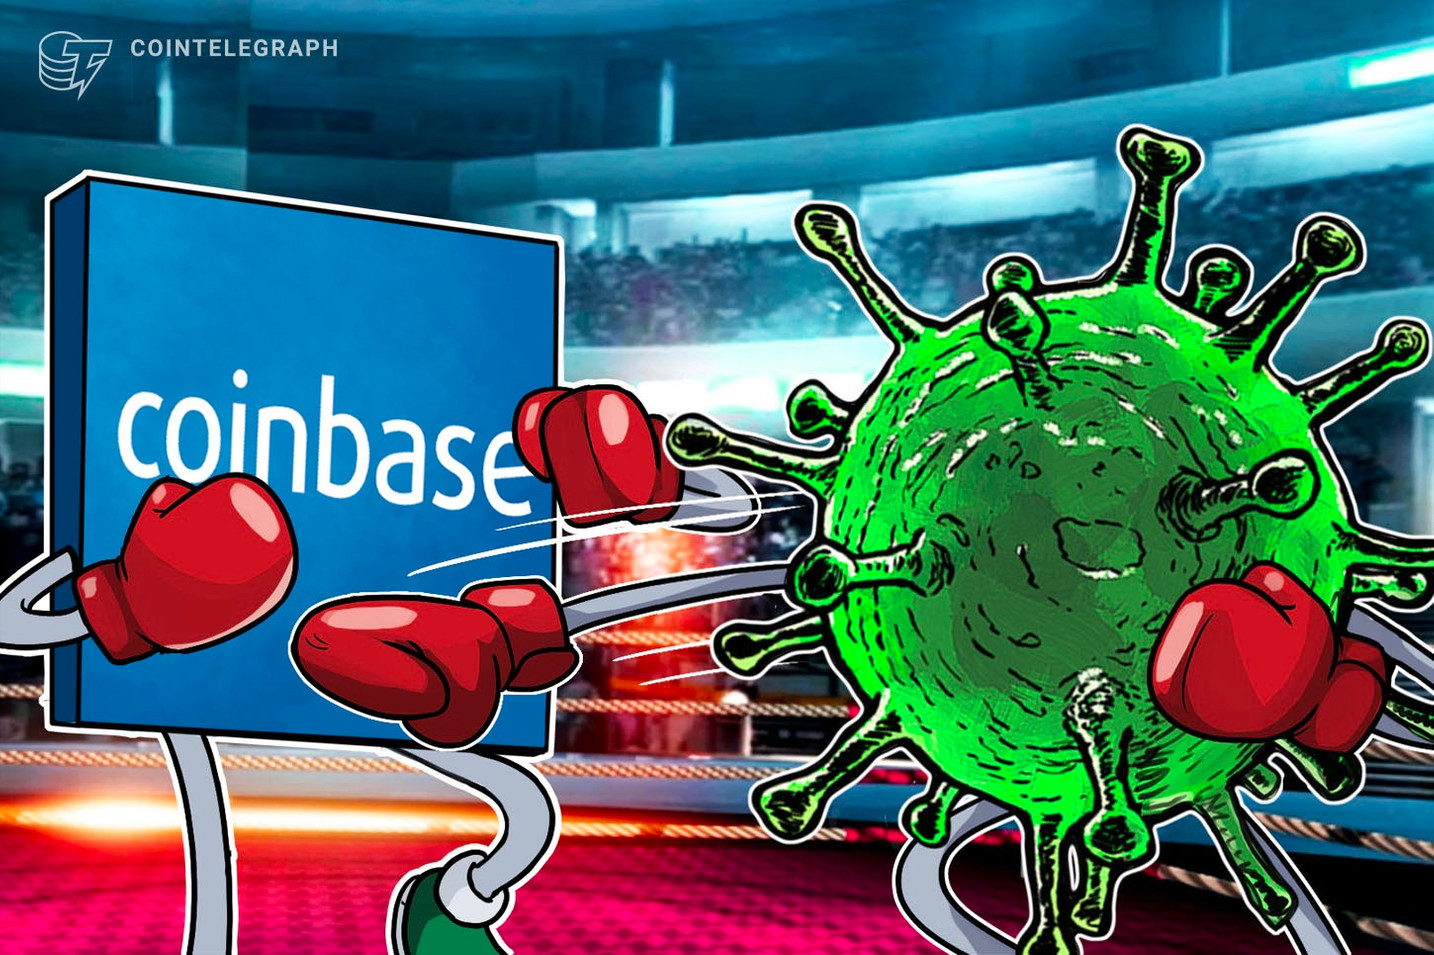 Coinbase Releases its Plan for the Coronavirus Spread